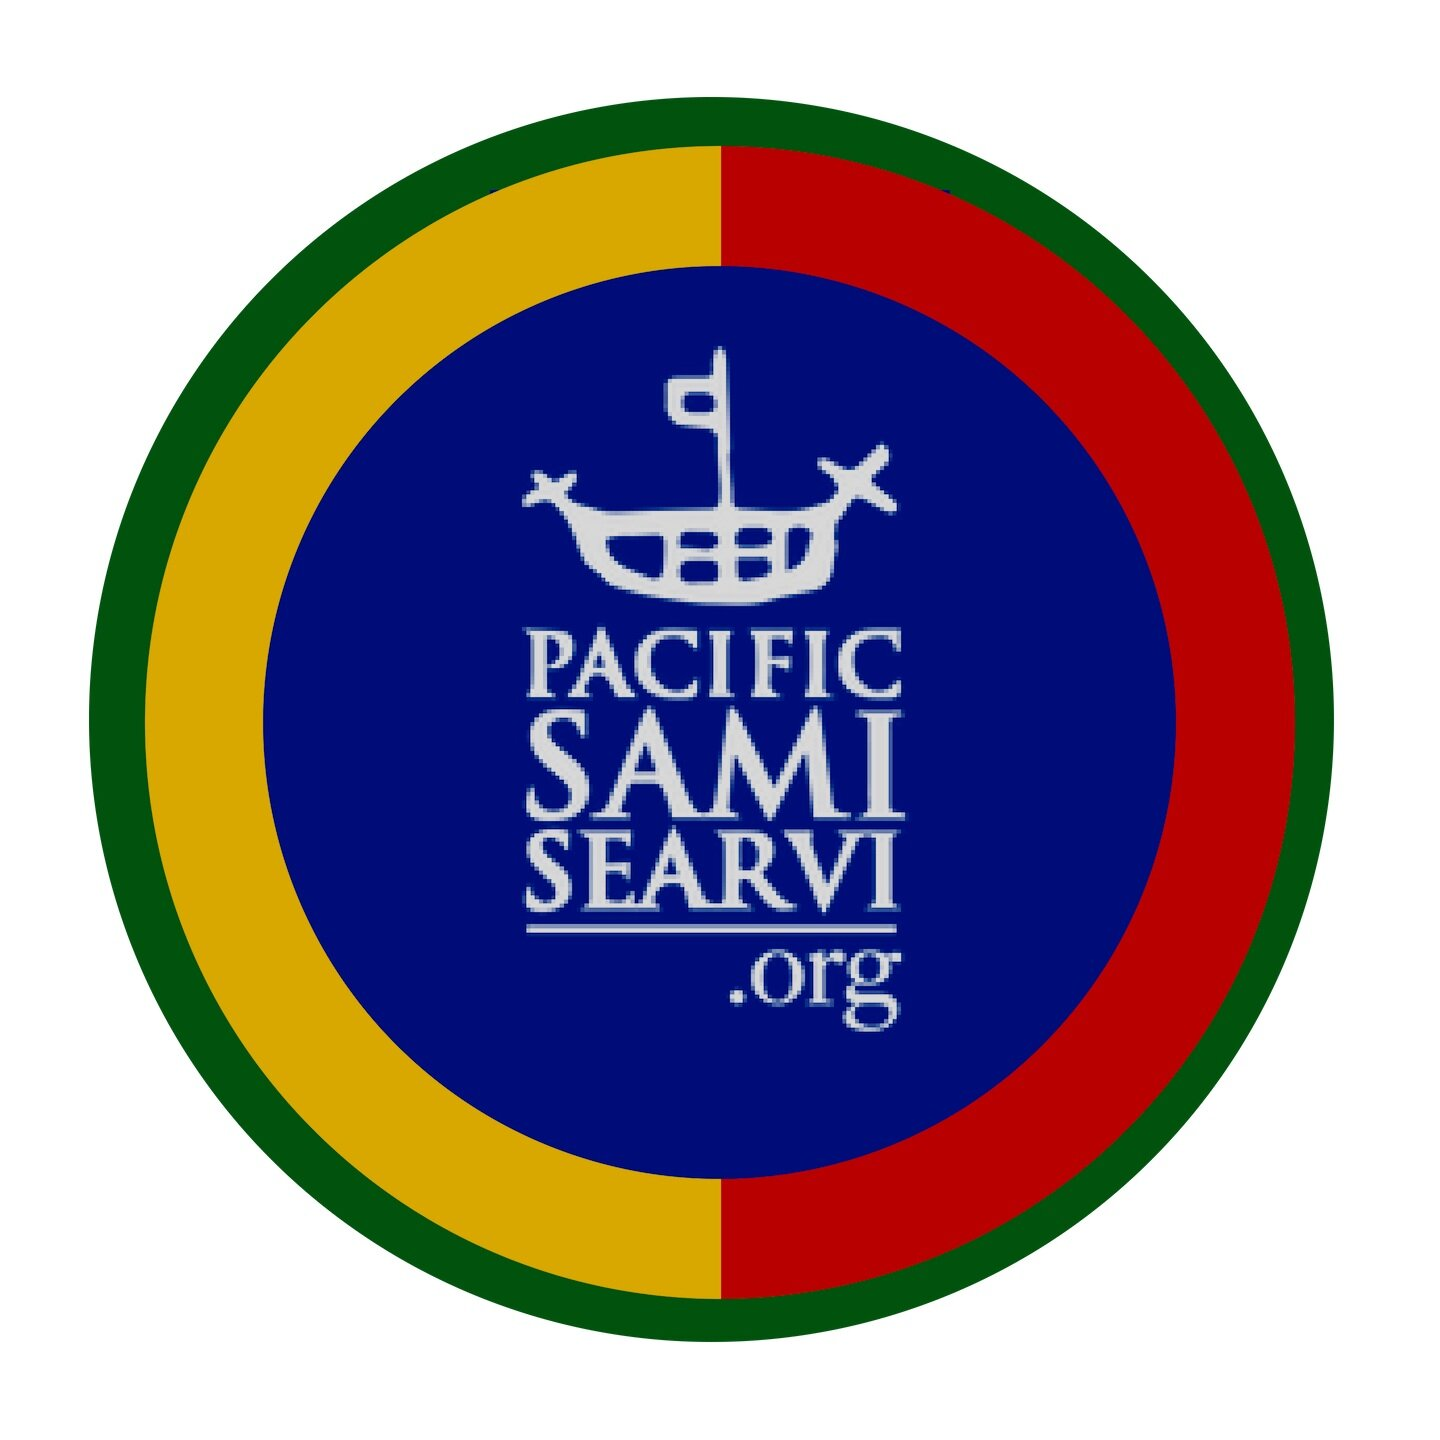 Pacific Sámi Searvi